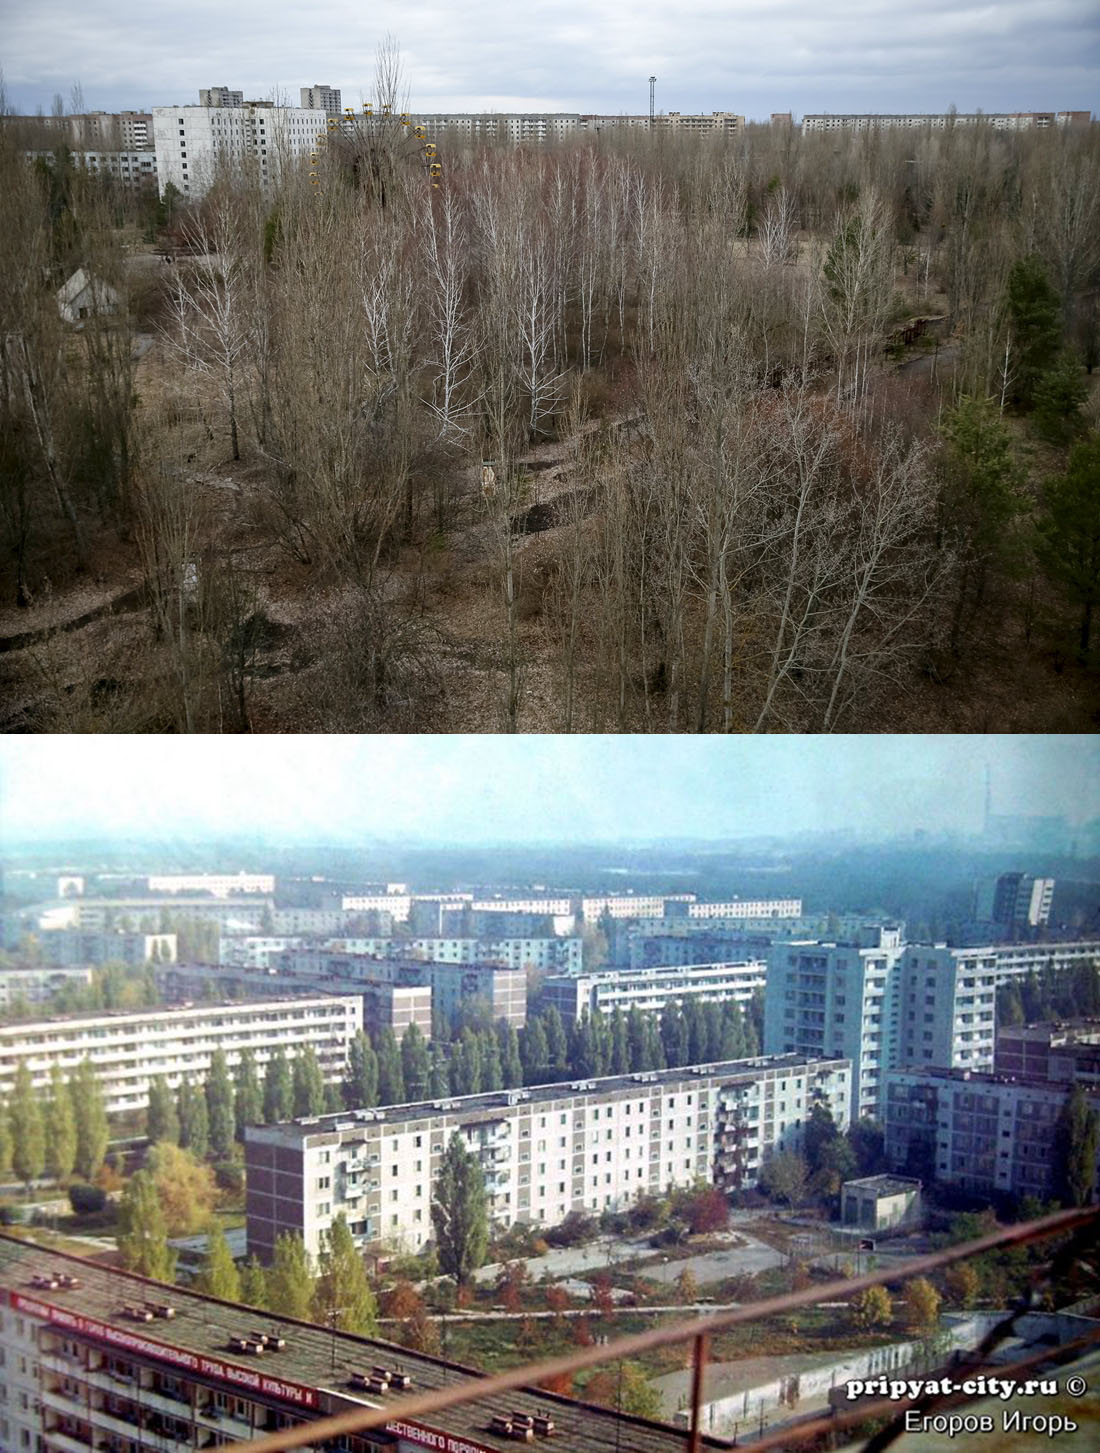 Chernobyl then and now: still abandoned after 30 years